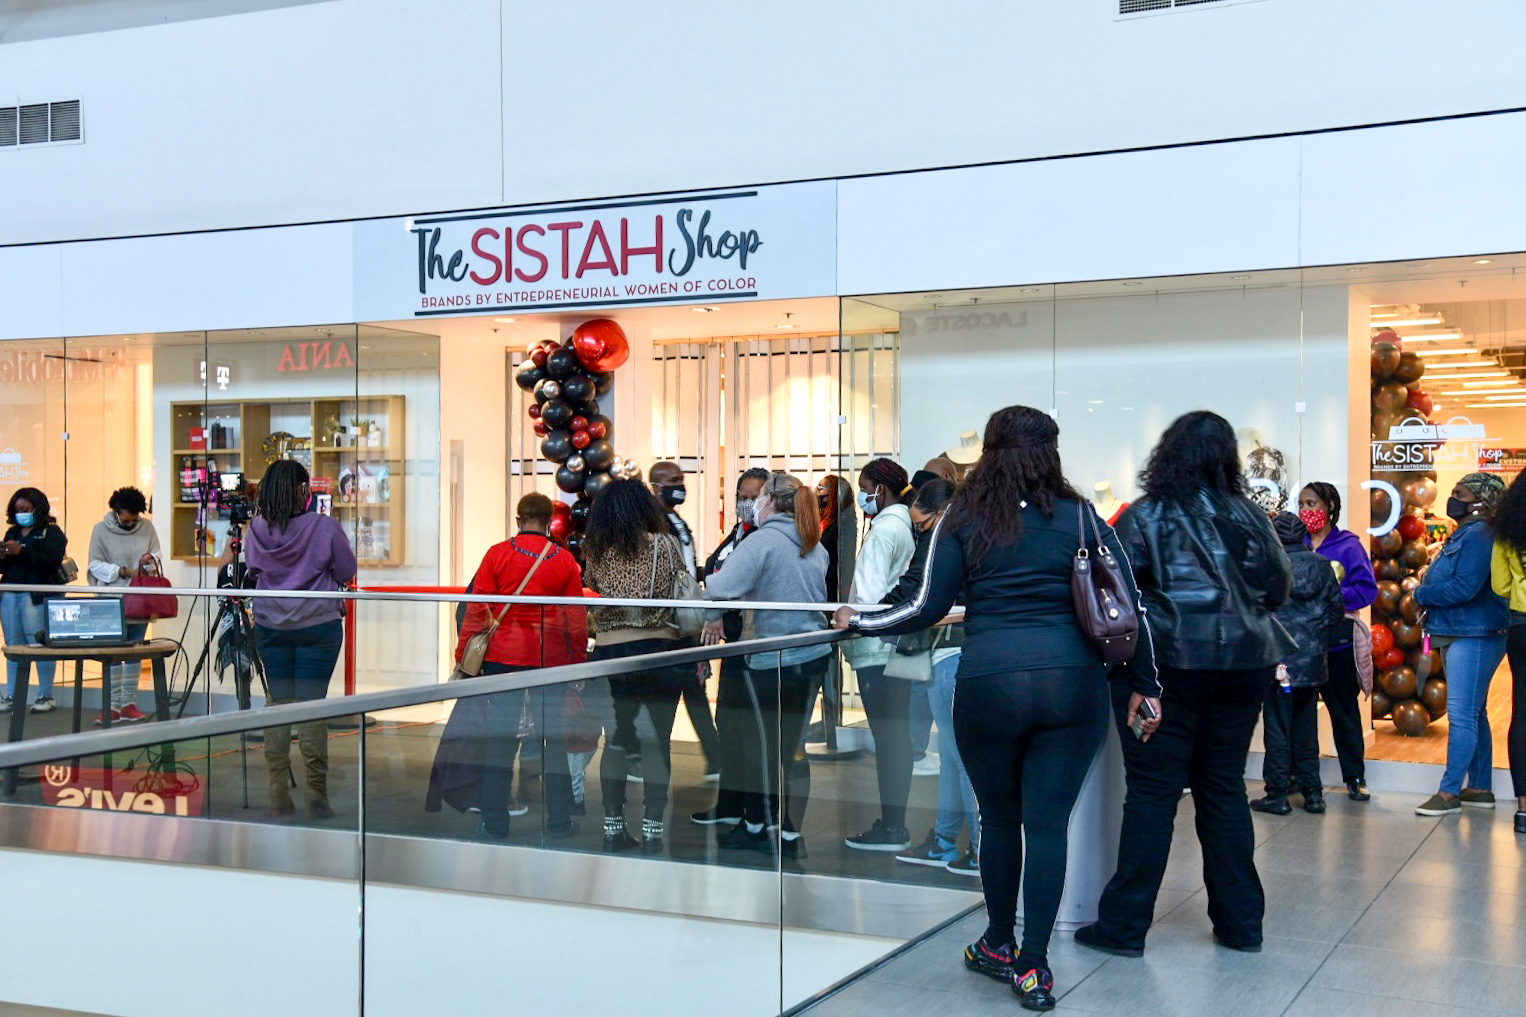 The Sistah Shop